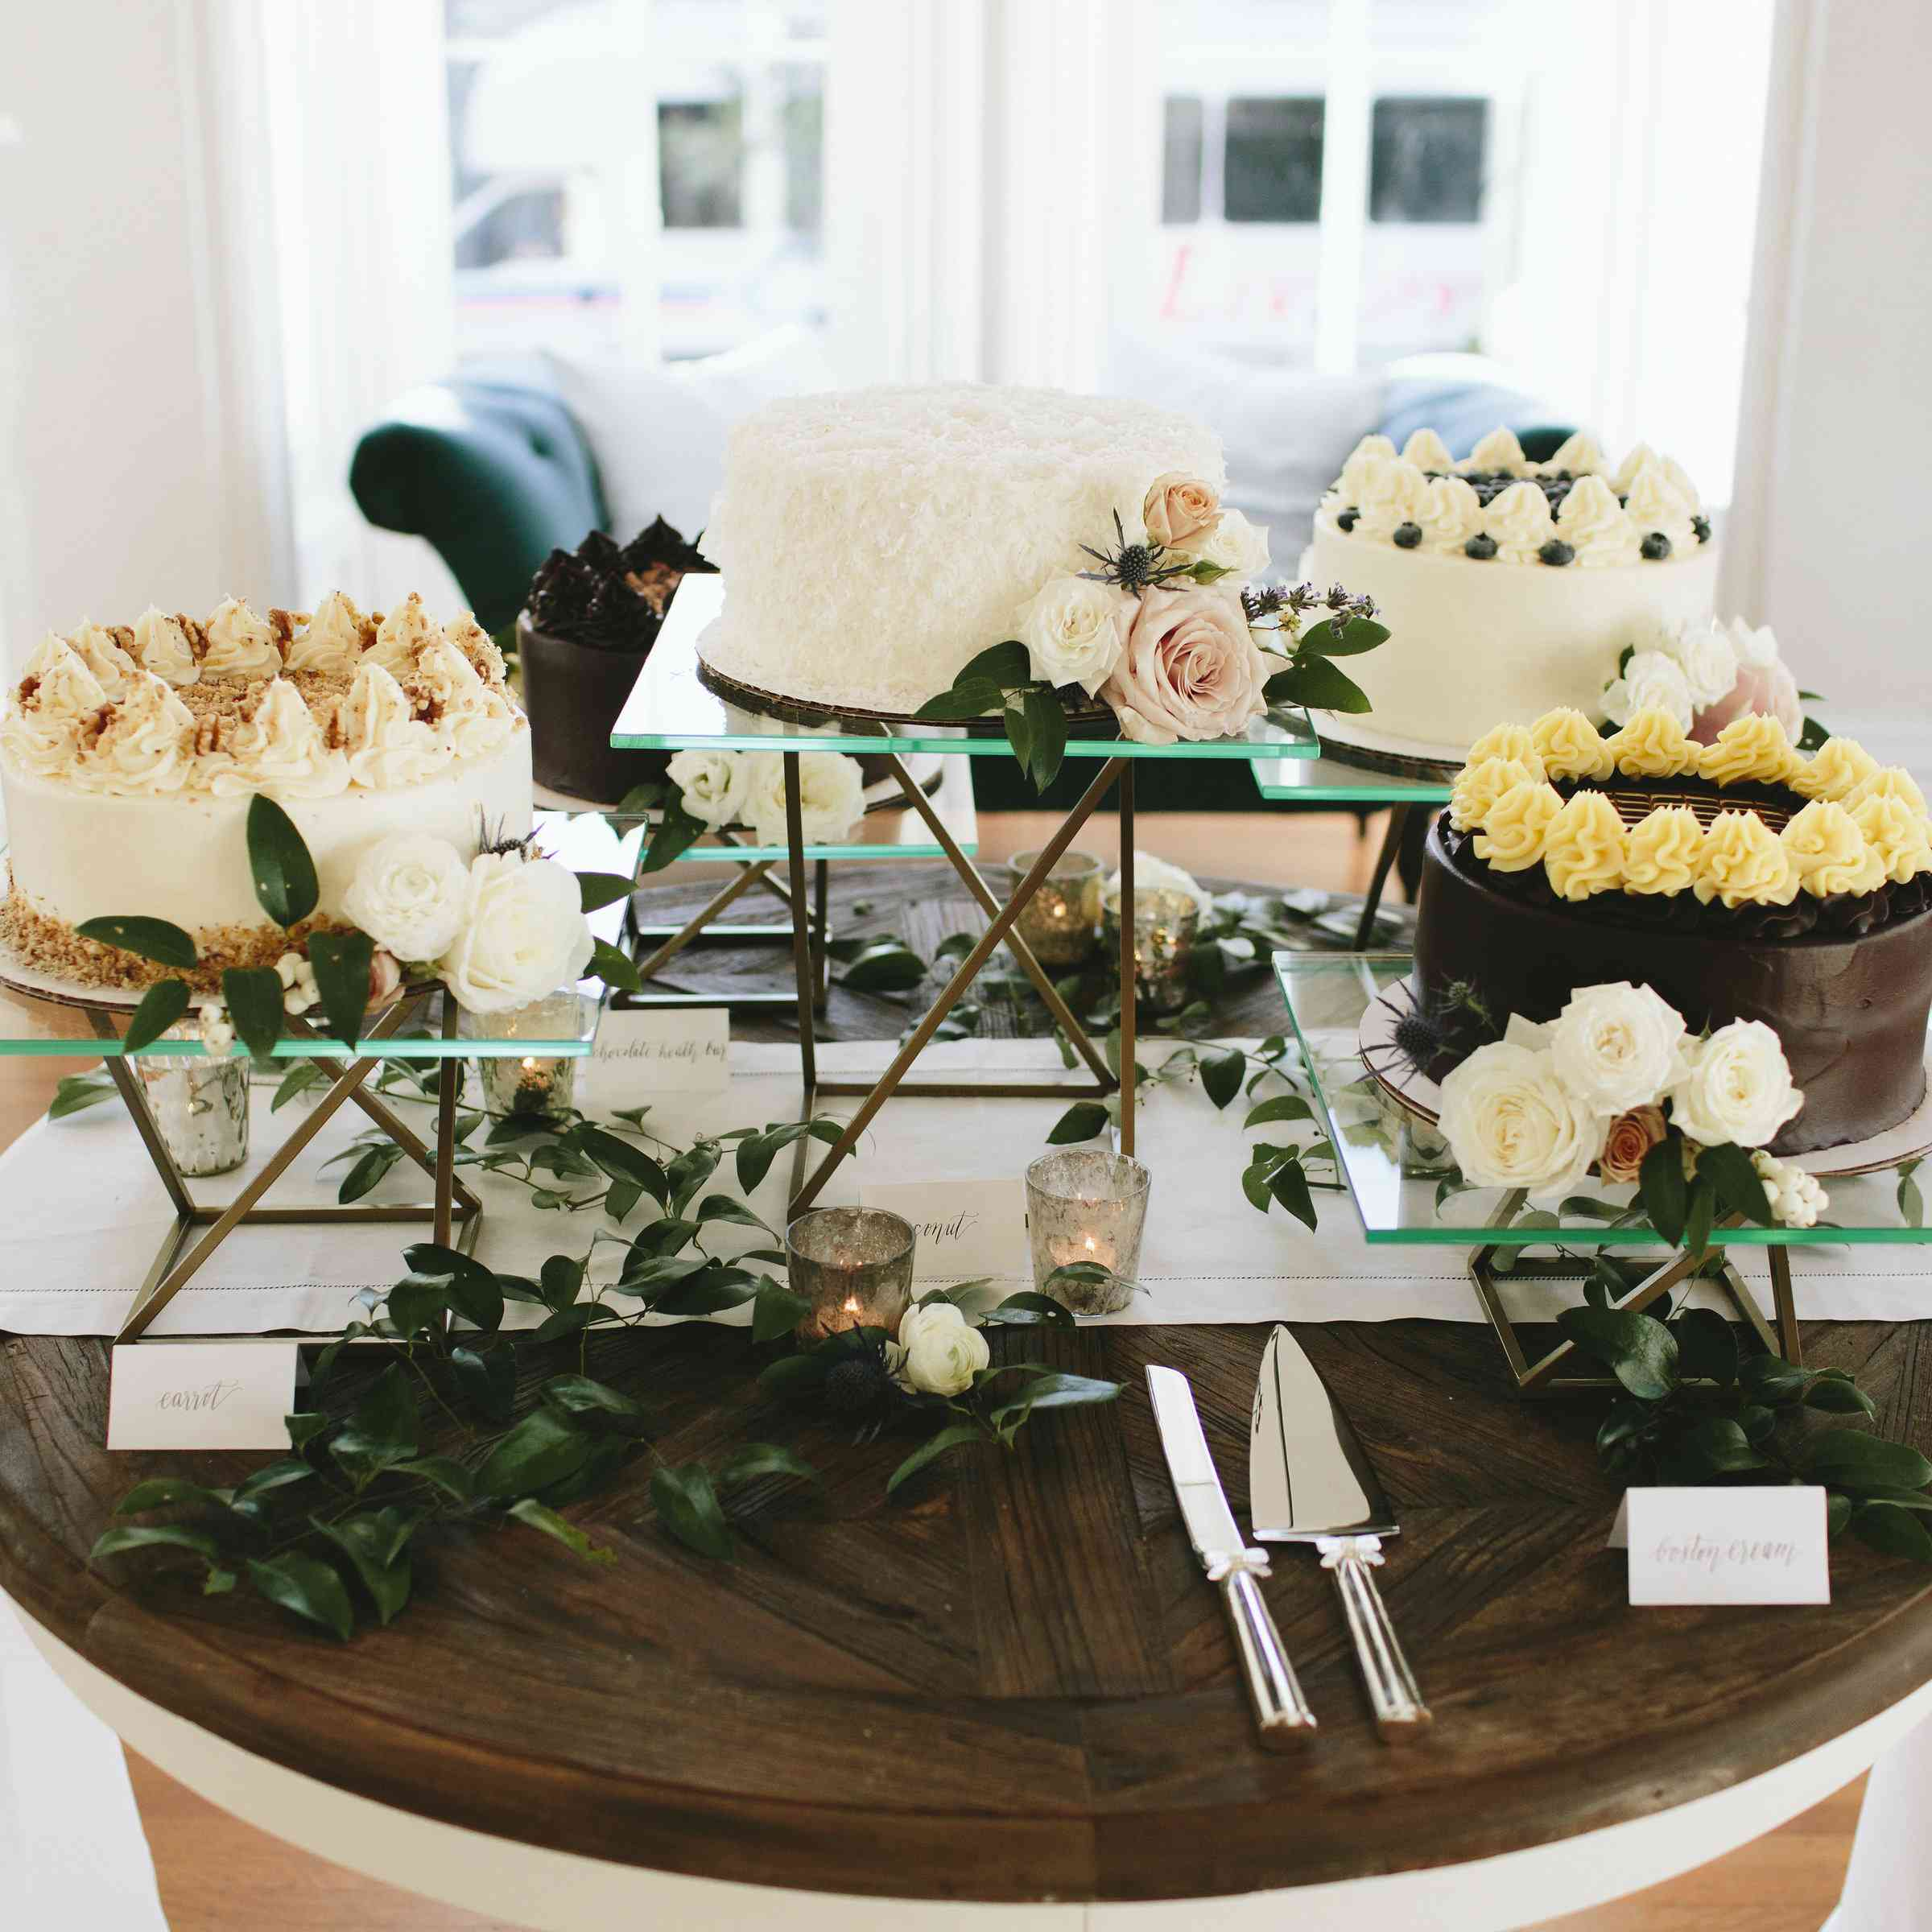 <p>cake table</p><br><br>